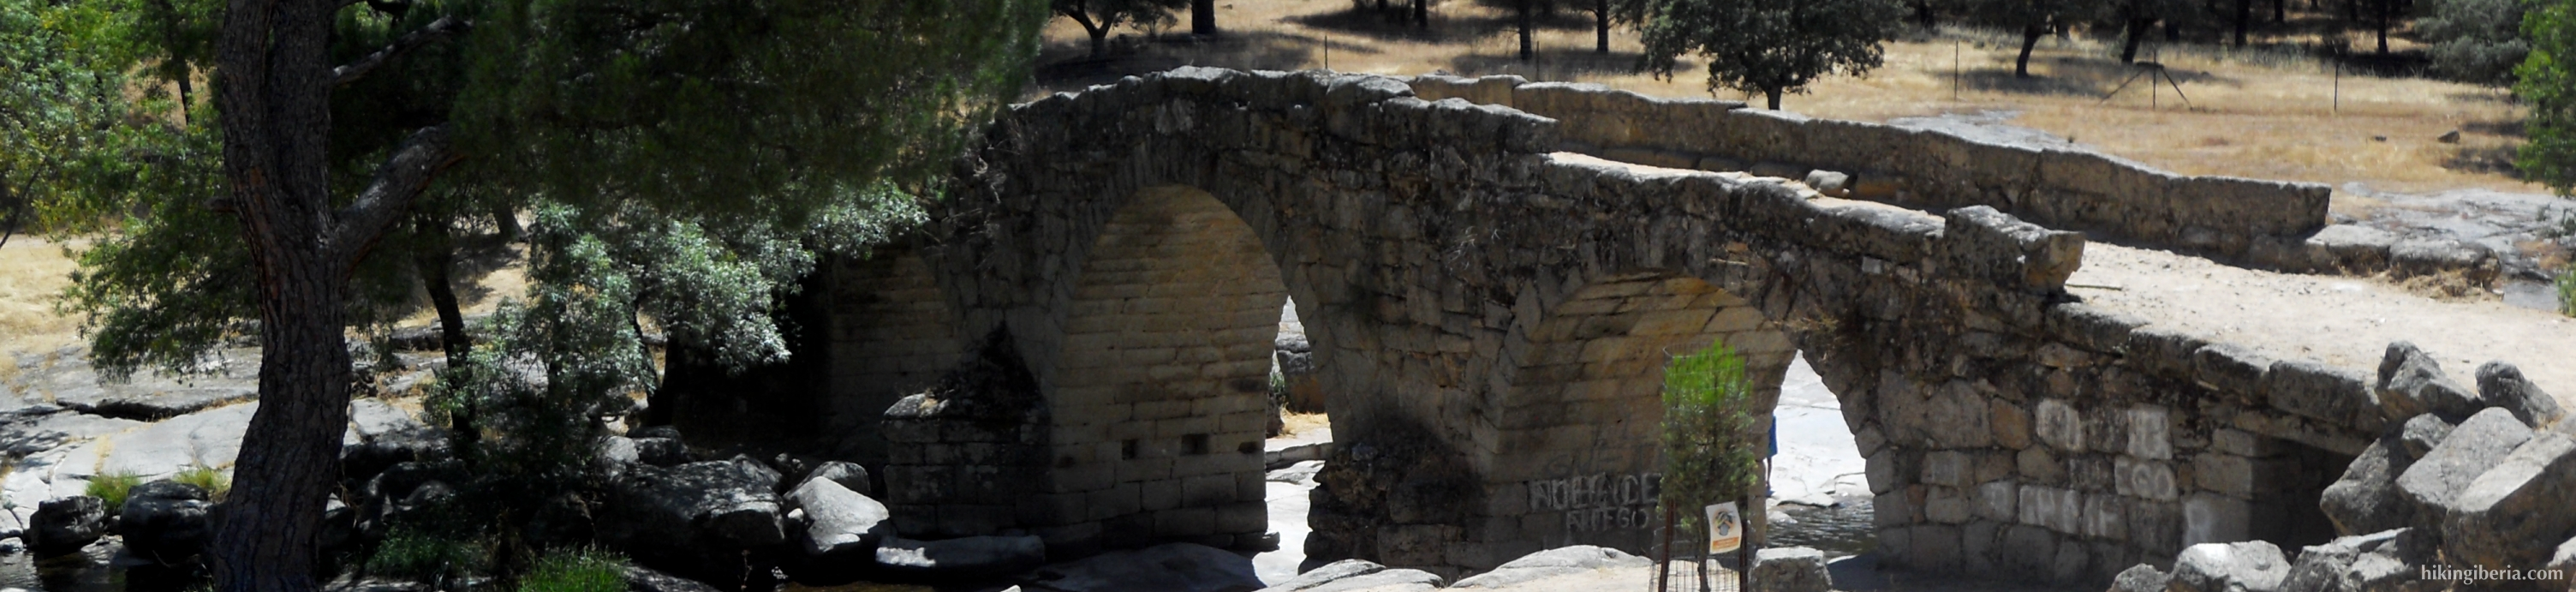 Roman Bridge of Valdemaqueda